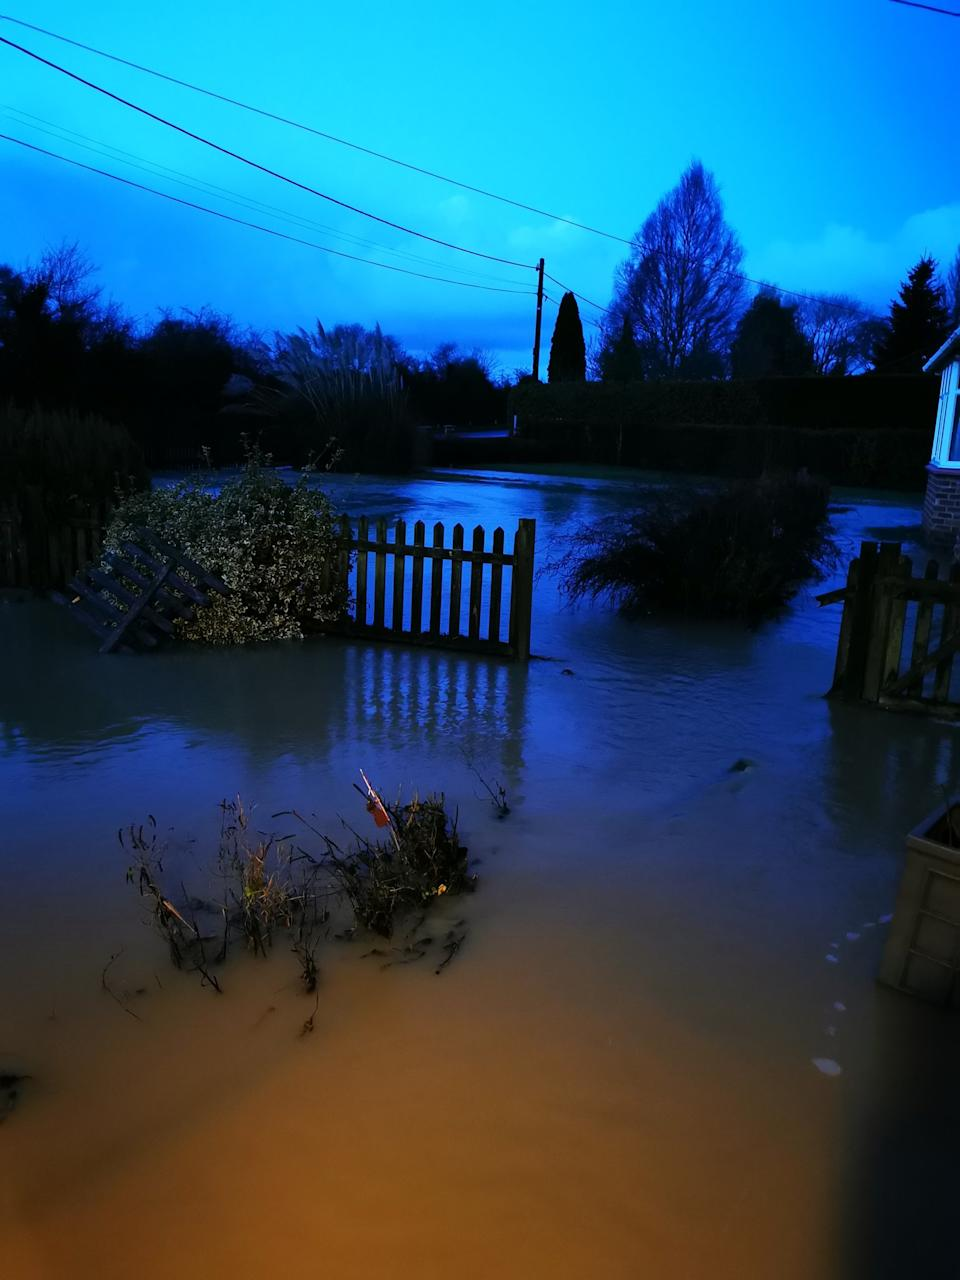 Handout photo courtesy of Peter Lloyd of flooding at his home in Peterborough, Cambridgeshire after heavy rain overnight.